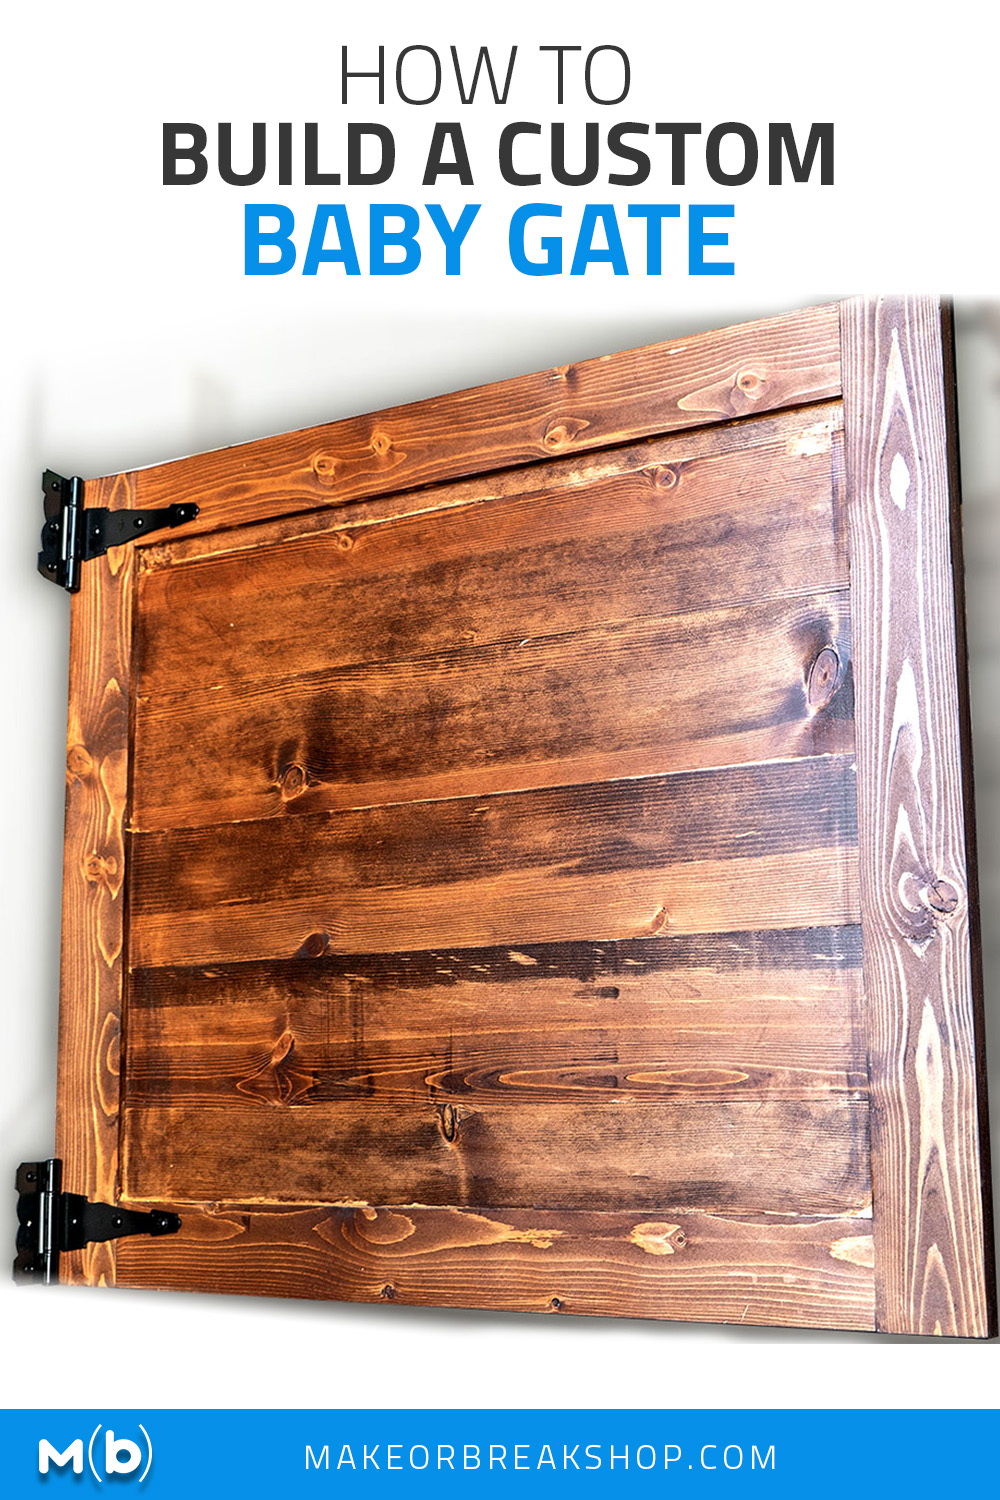 Build a custom baby gate for your house that fits exactly where you want it. Plus you only need construction labor and it's cheap!